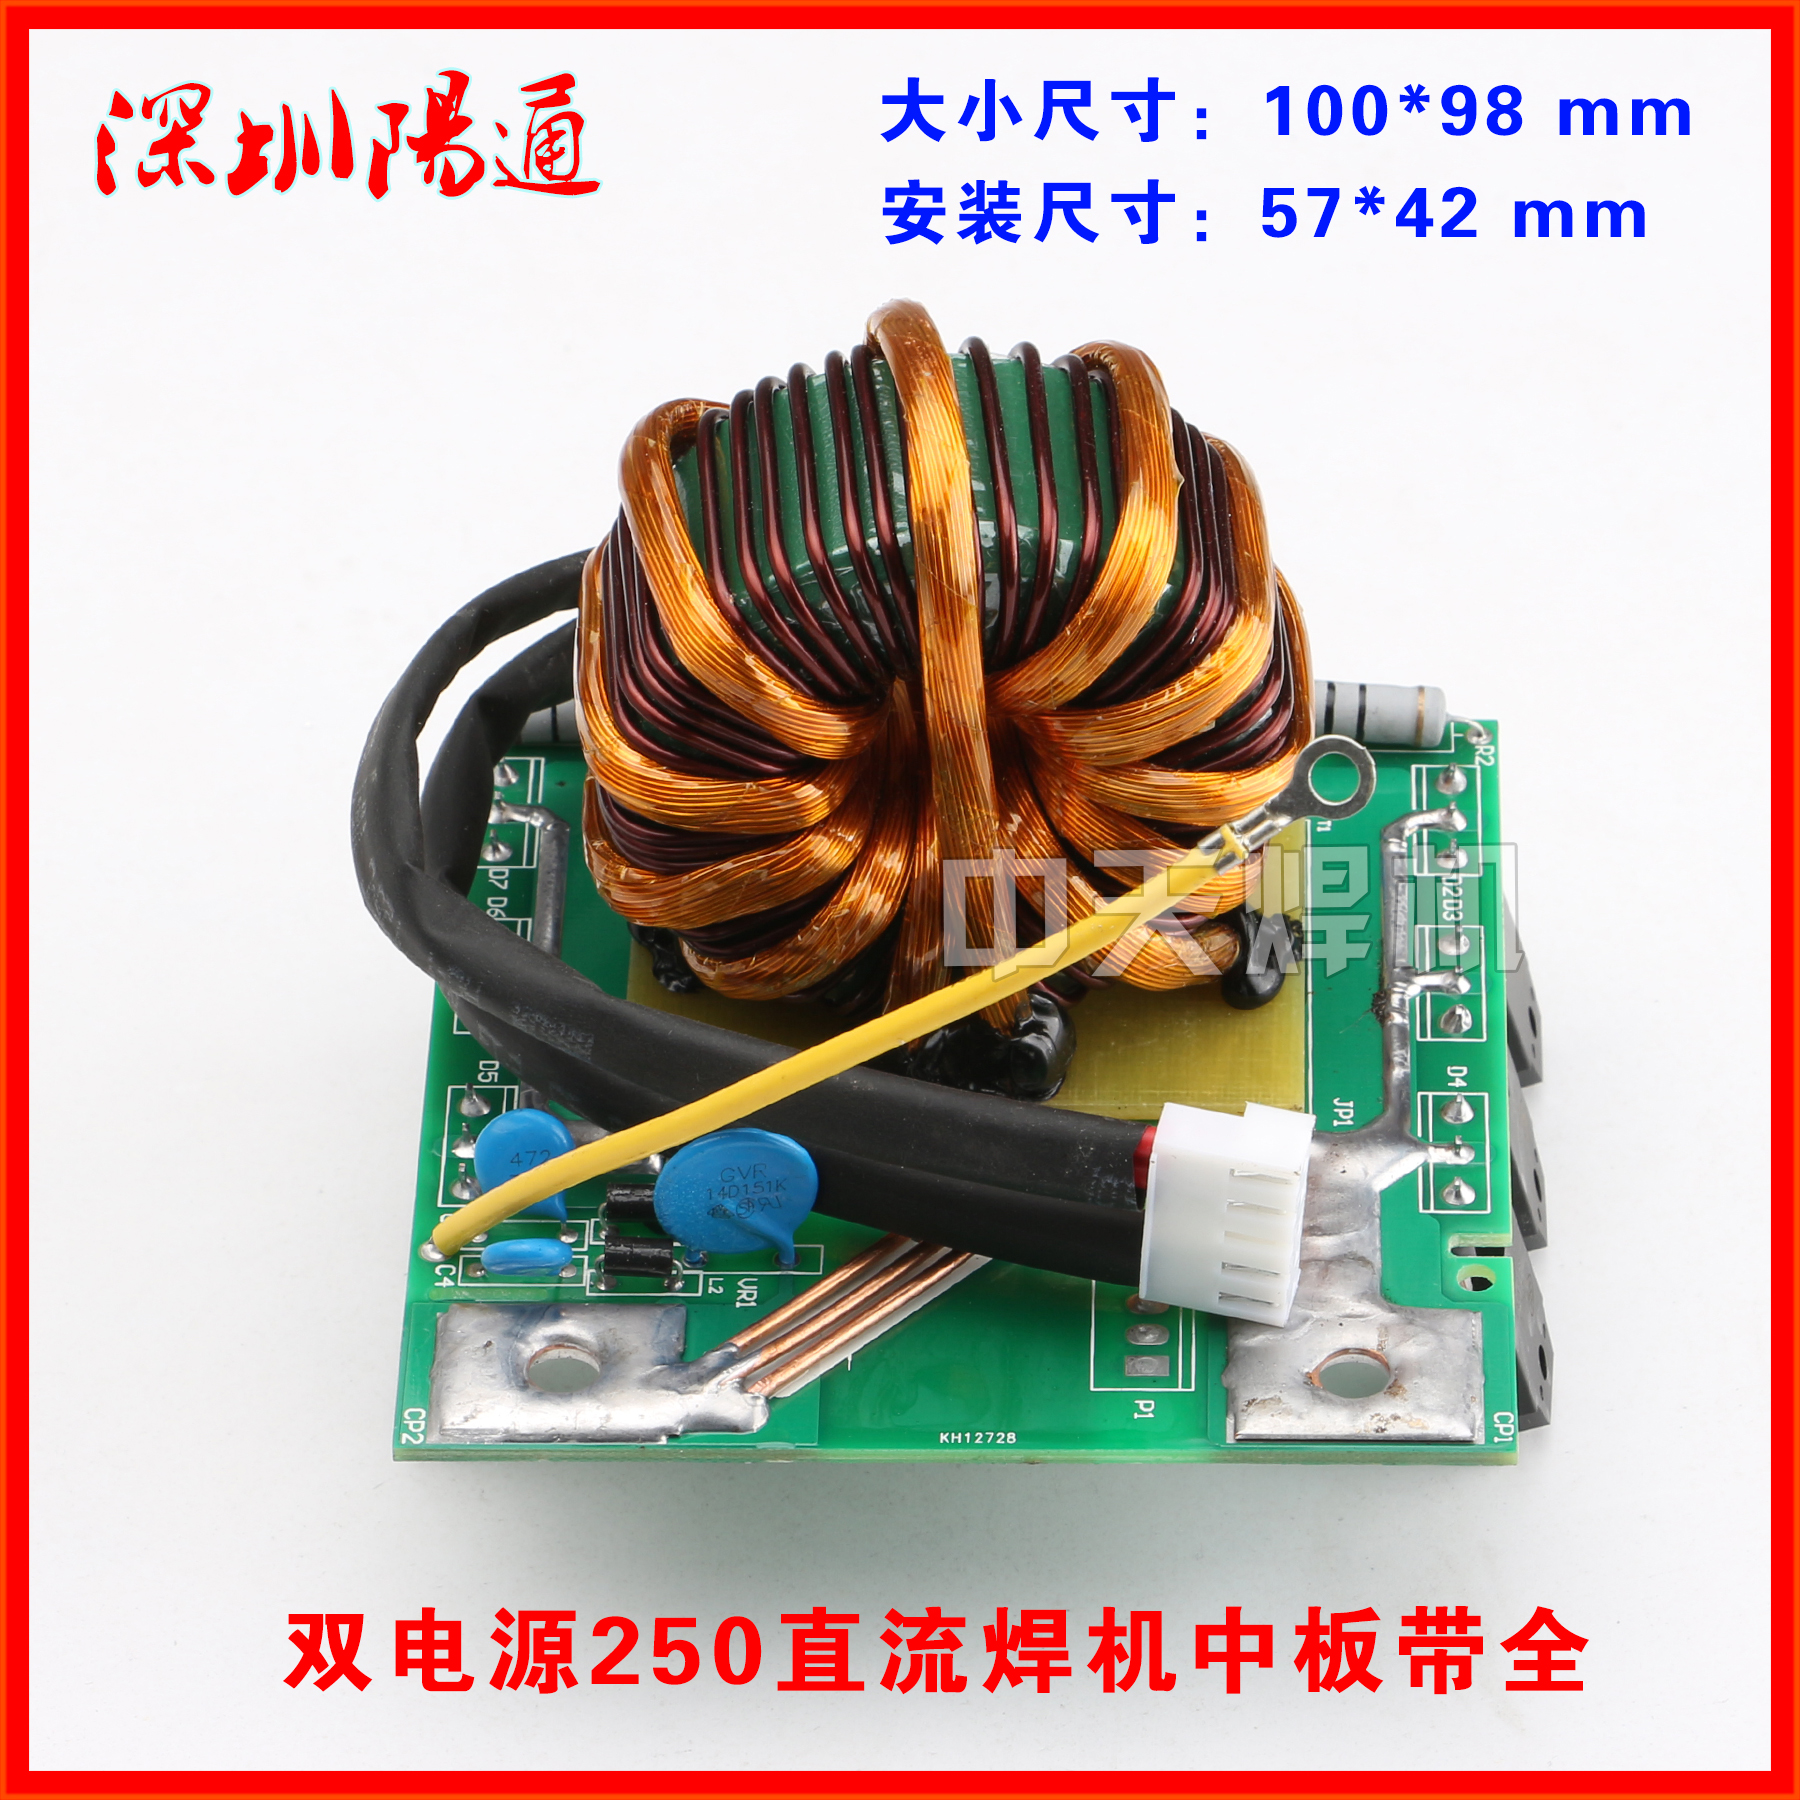 Double Voltage Zx7-250s Dc Welder with Transformer Rectifier Tube Circuit Board Replacement Repair Circuit Board zx7 250s single tube igbt double voltage dc welding inverter upper board control board circuit board maintenance replacement